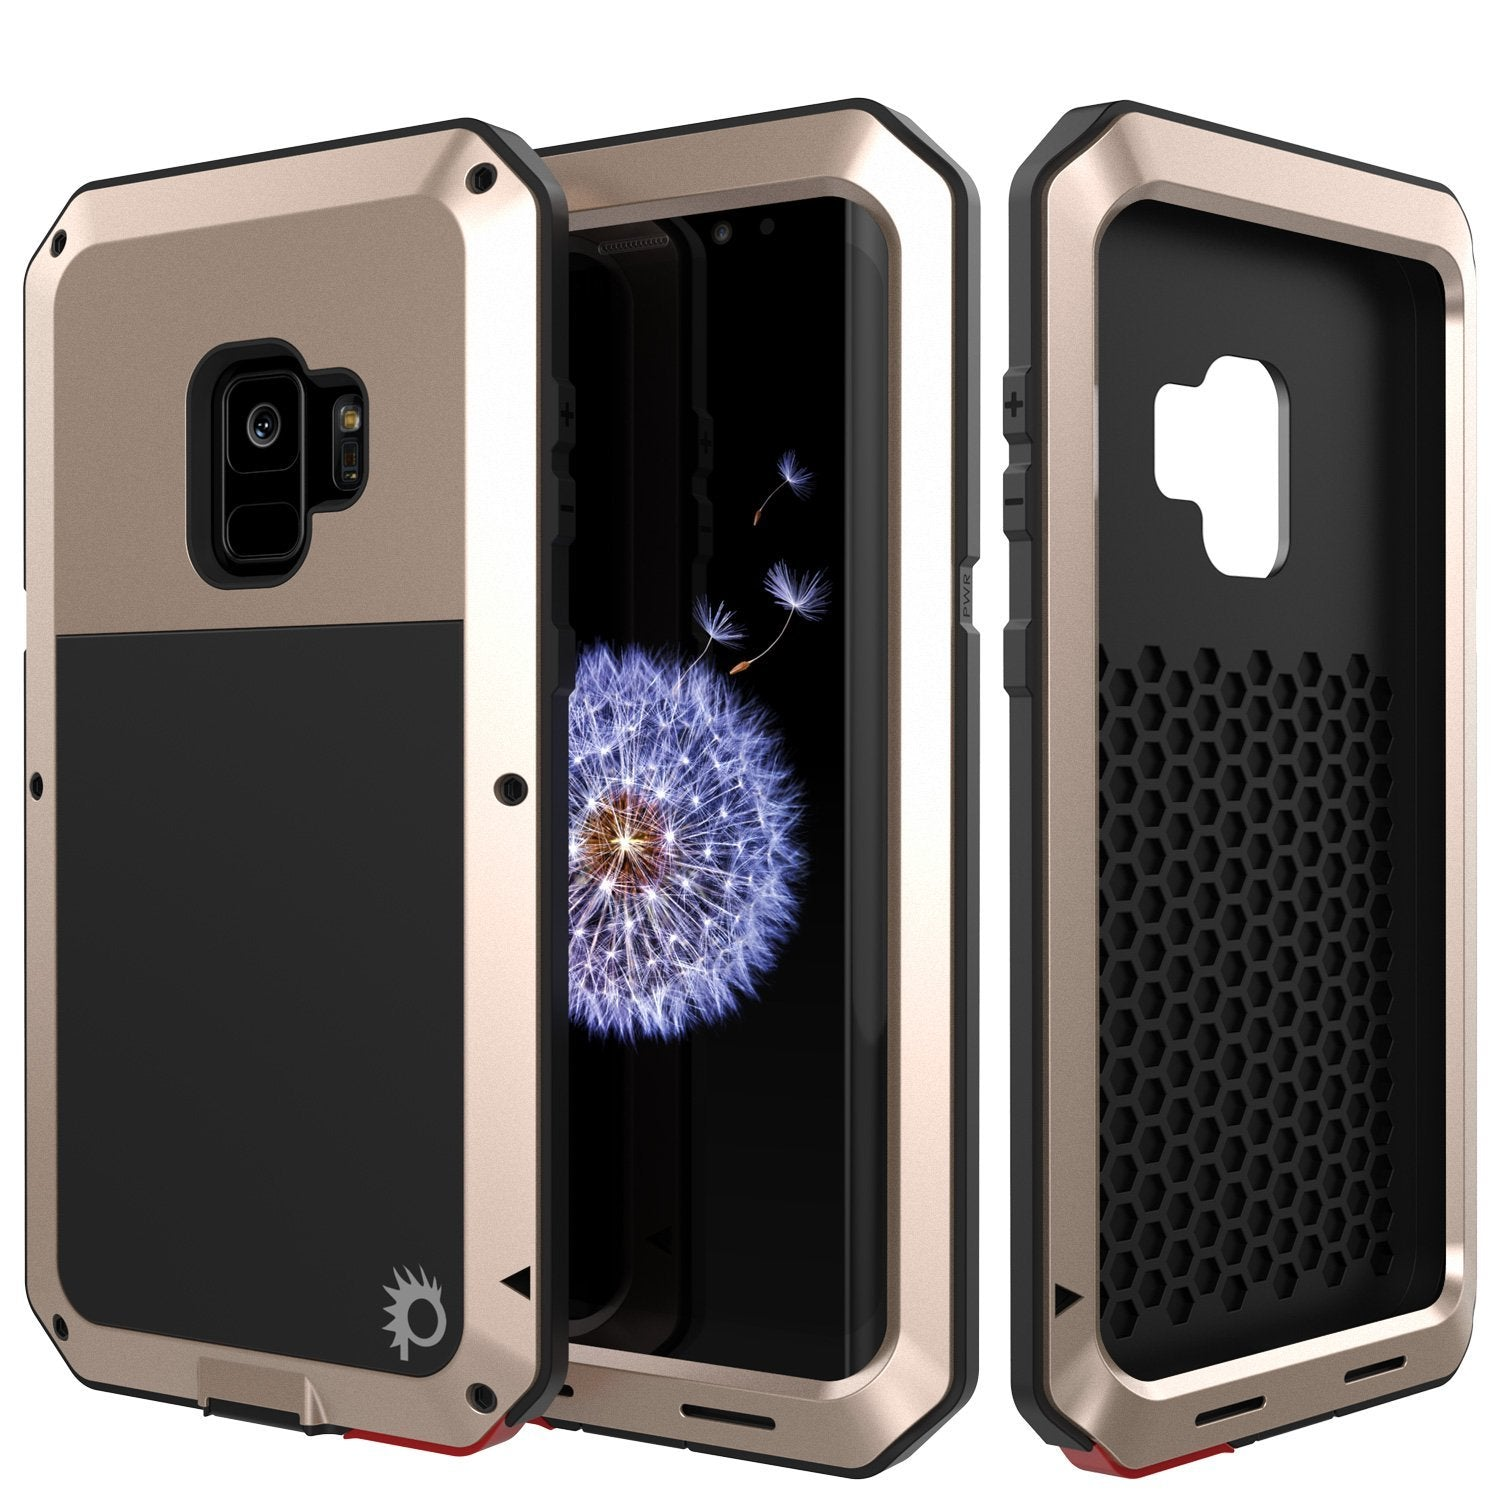 Galaxy S10e Metal Case, Heavy Duty Military Grade Rugged Armor Cover [Gold]